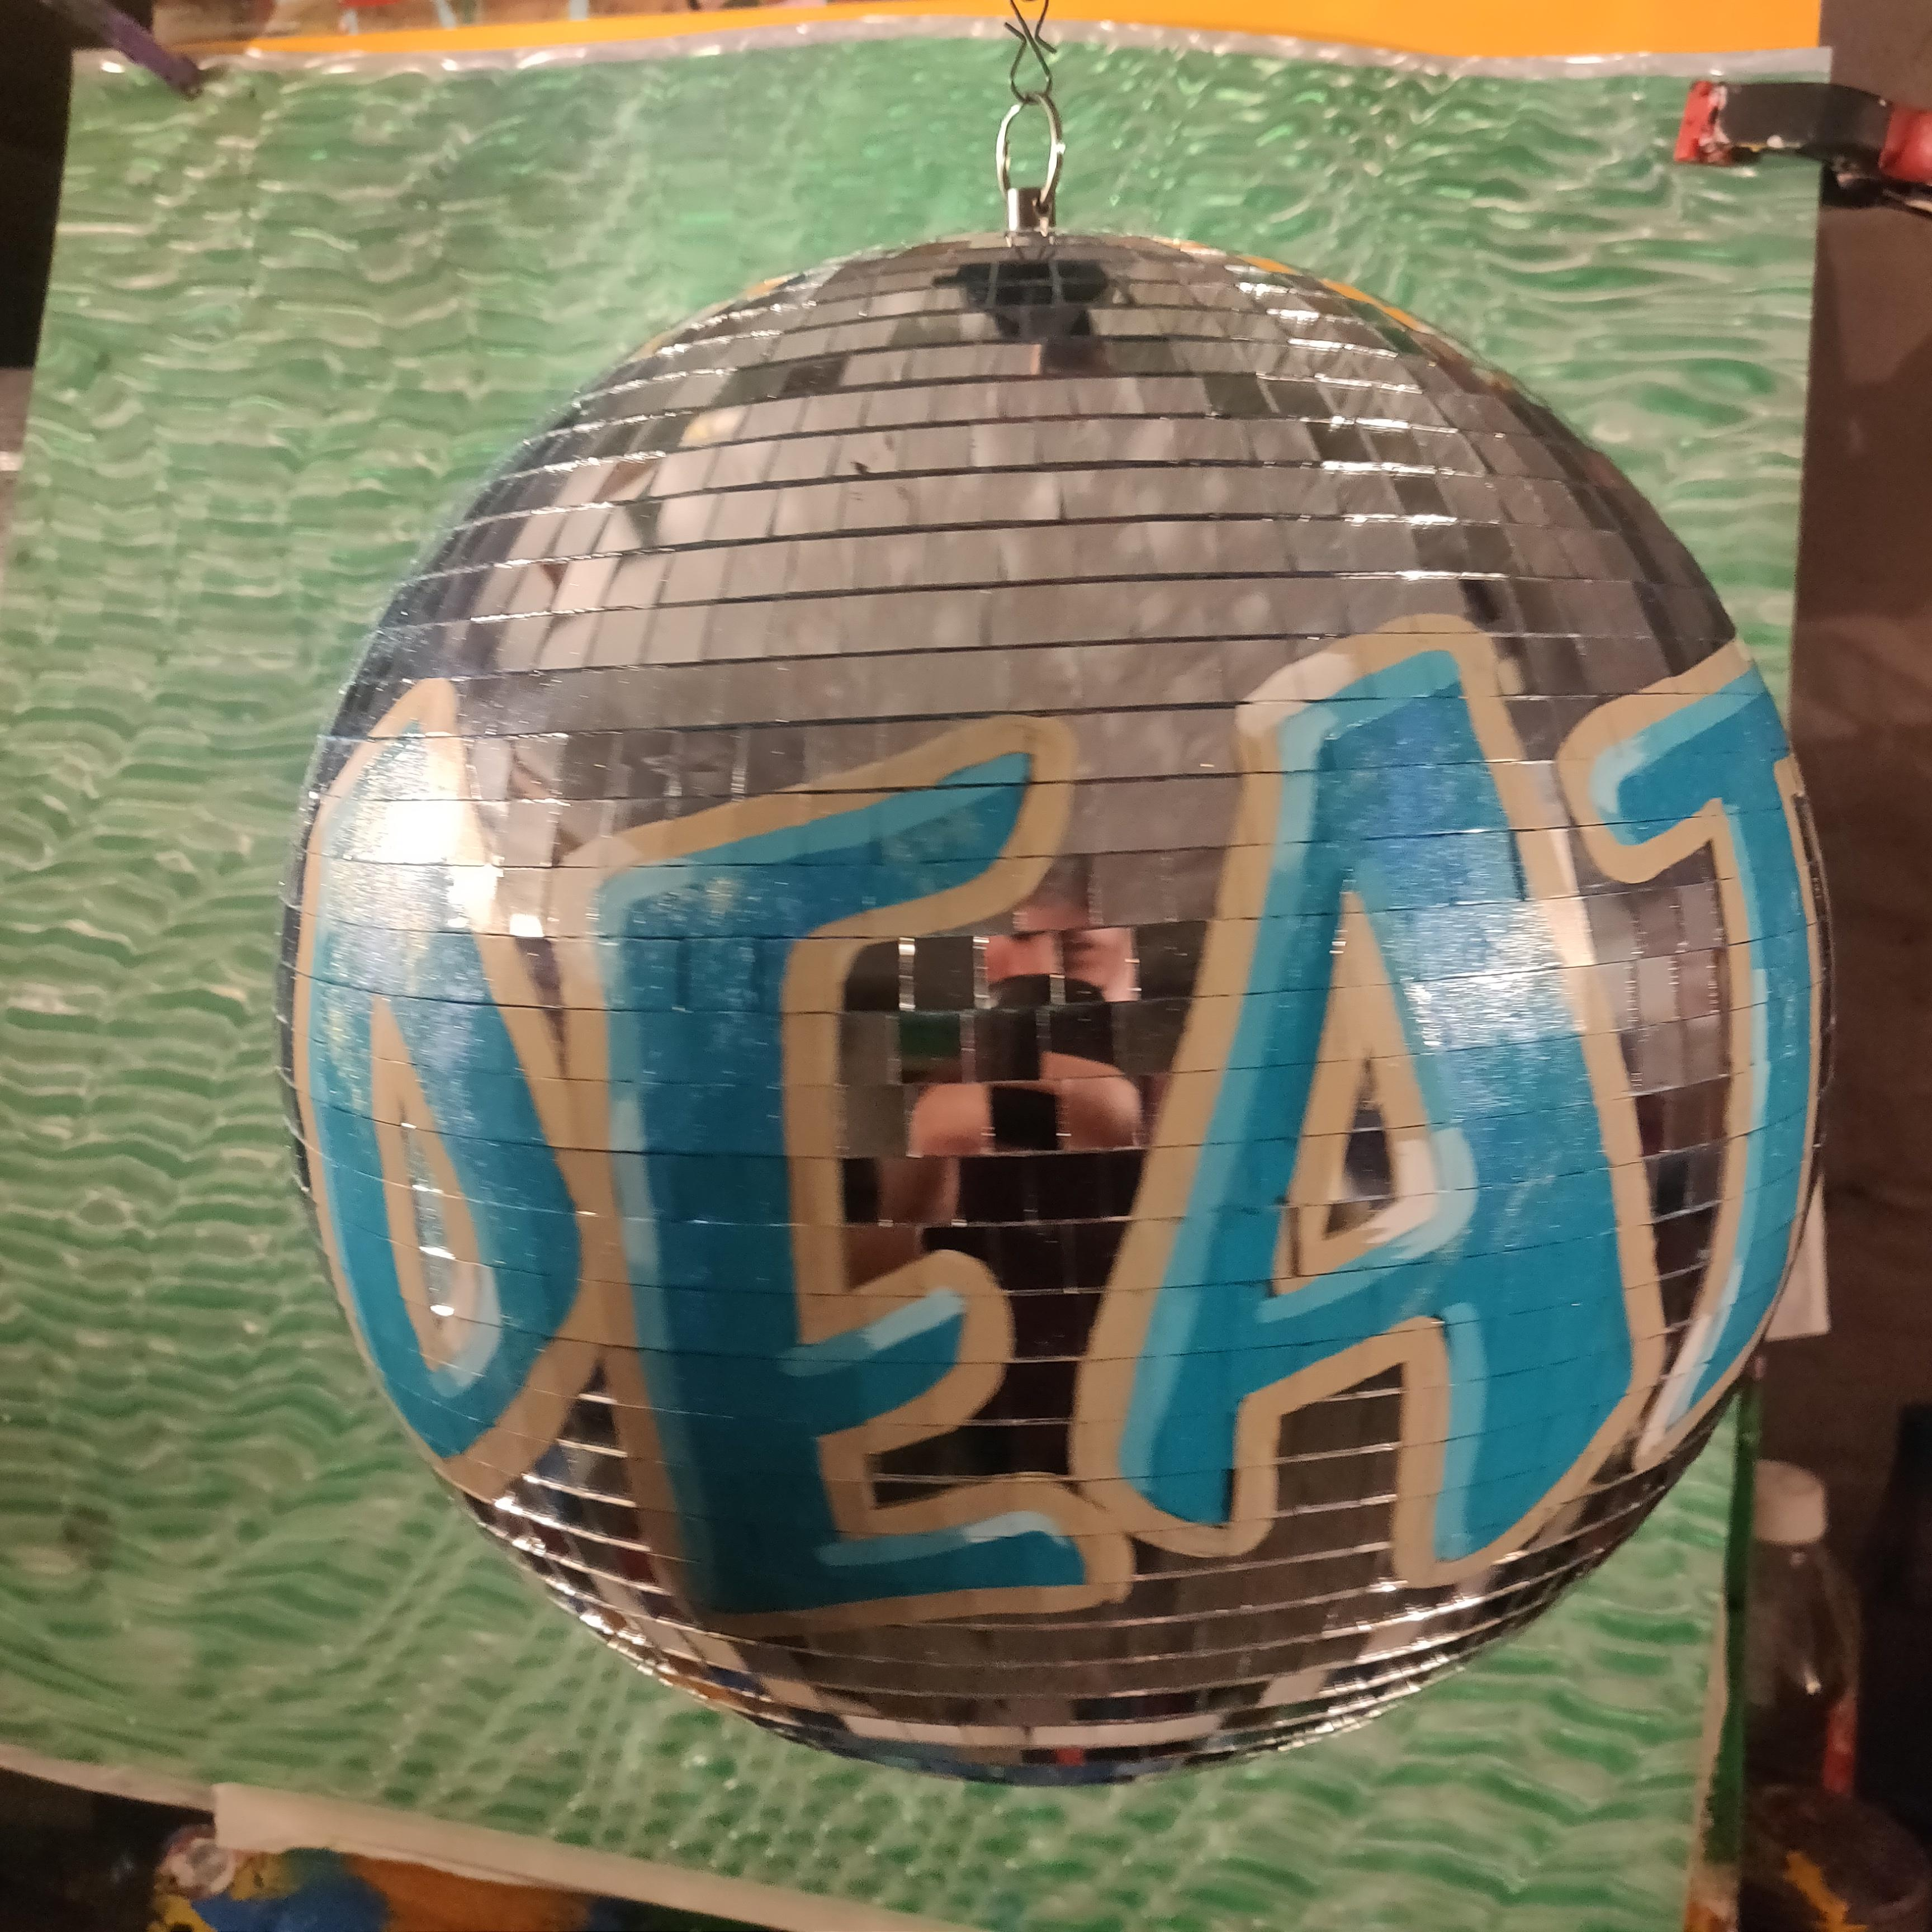 Custom enamel and glitter painted 300mm mirrorball.